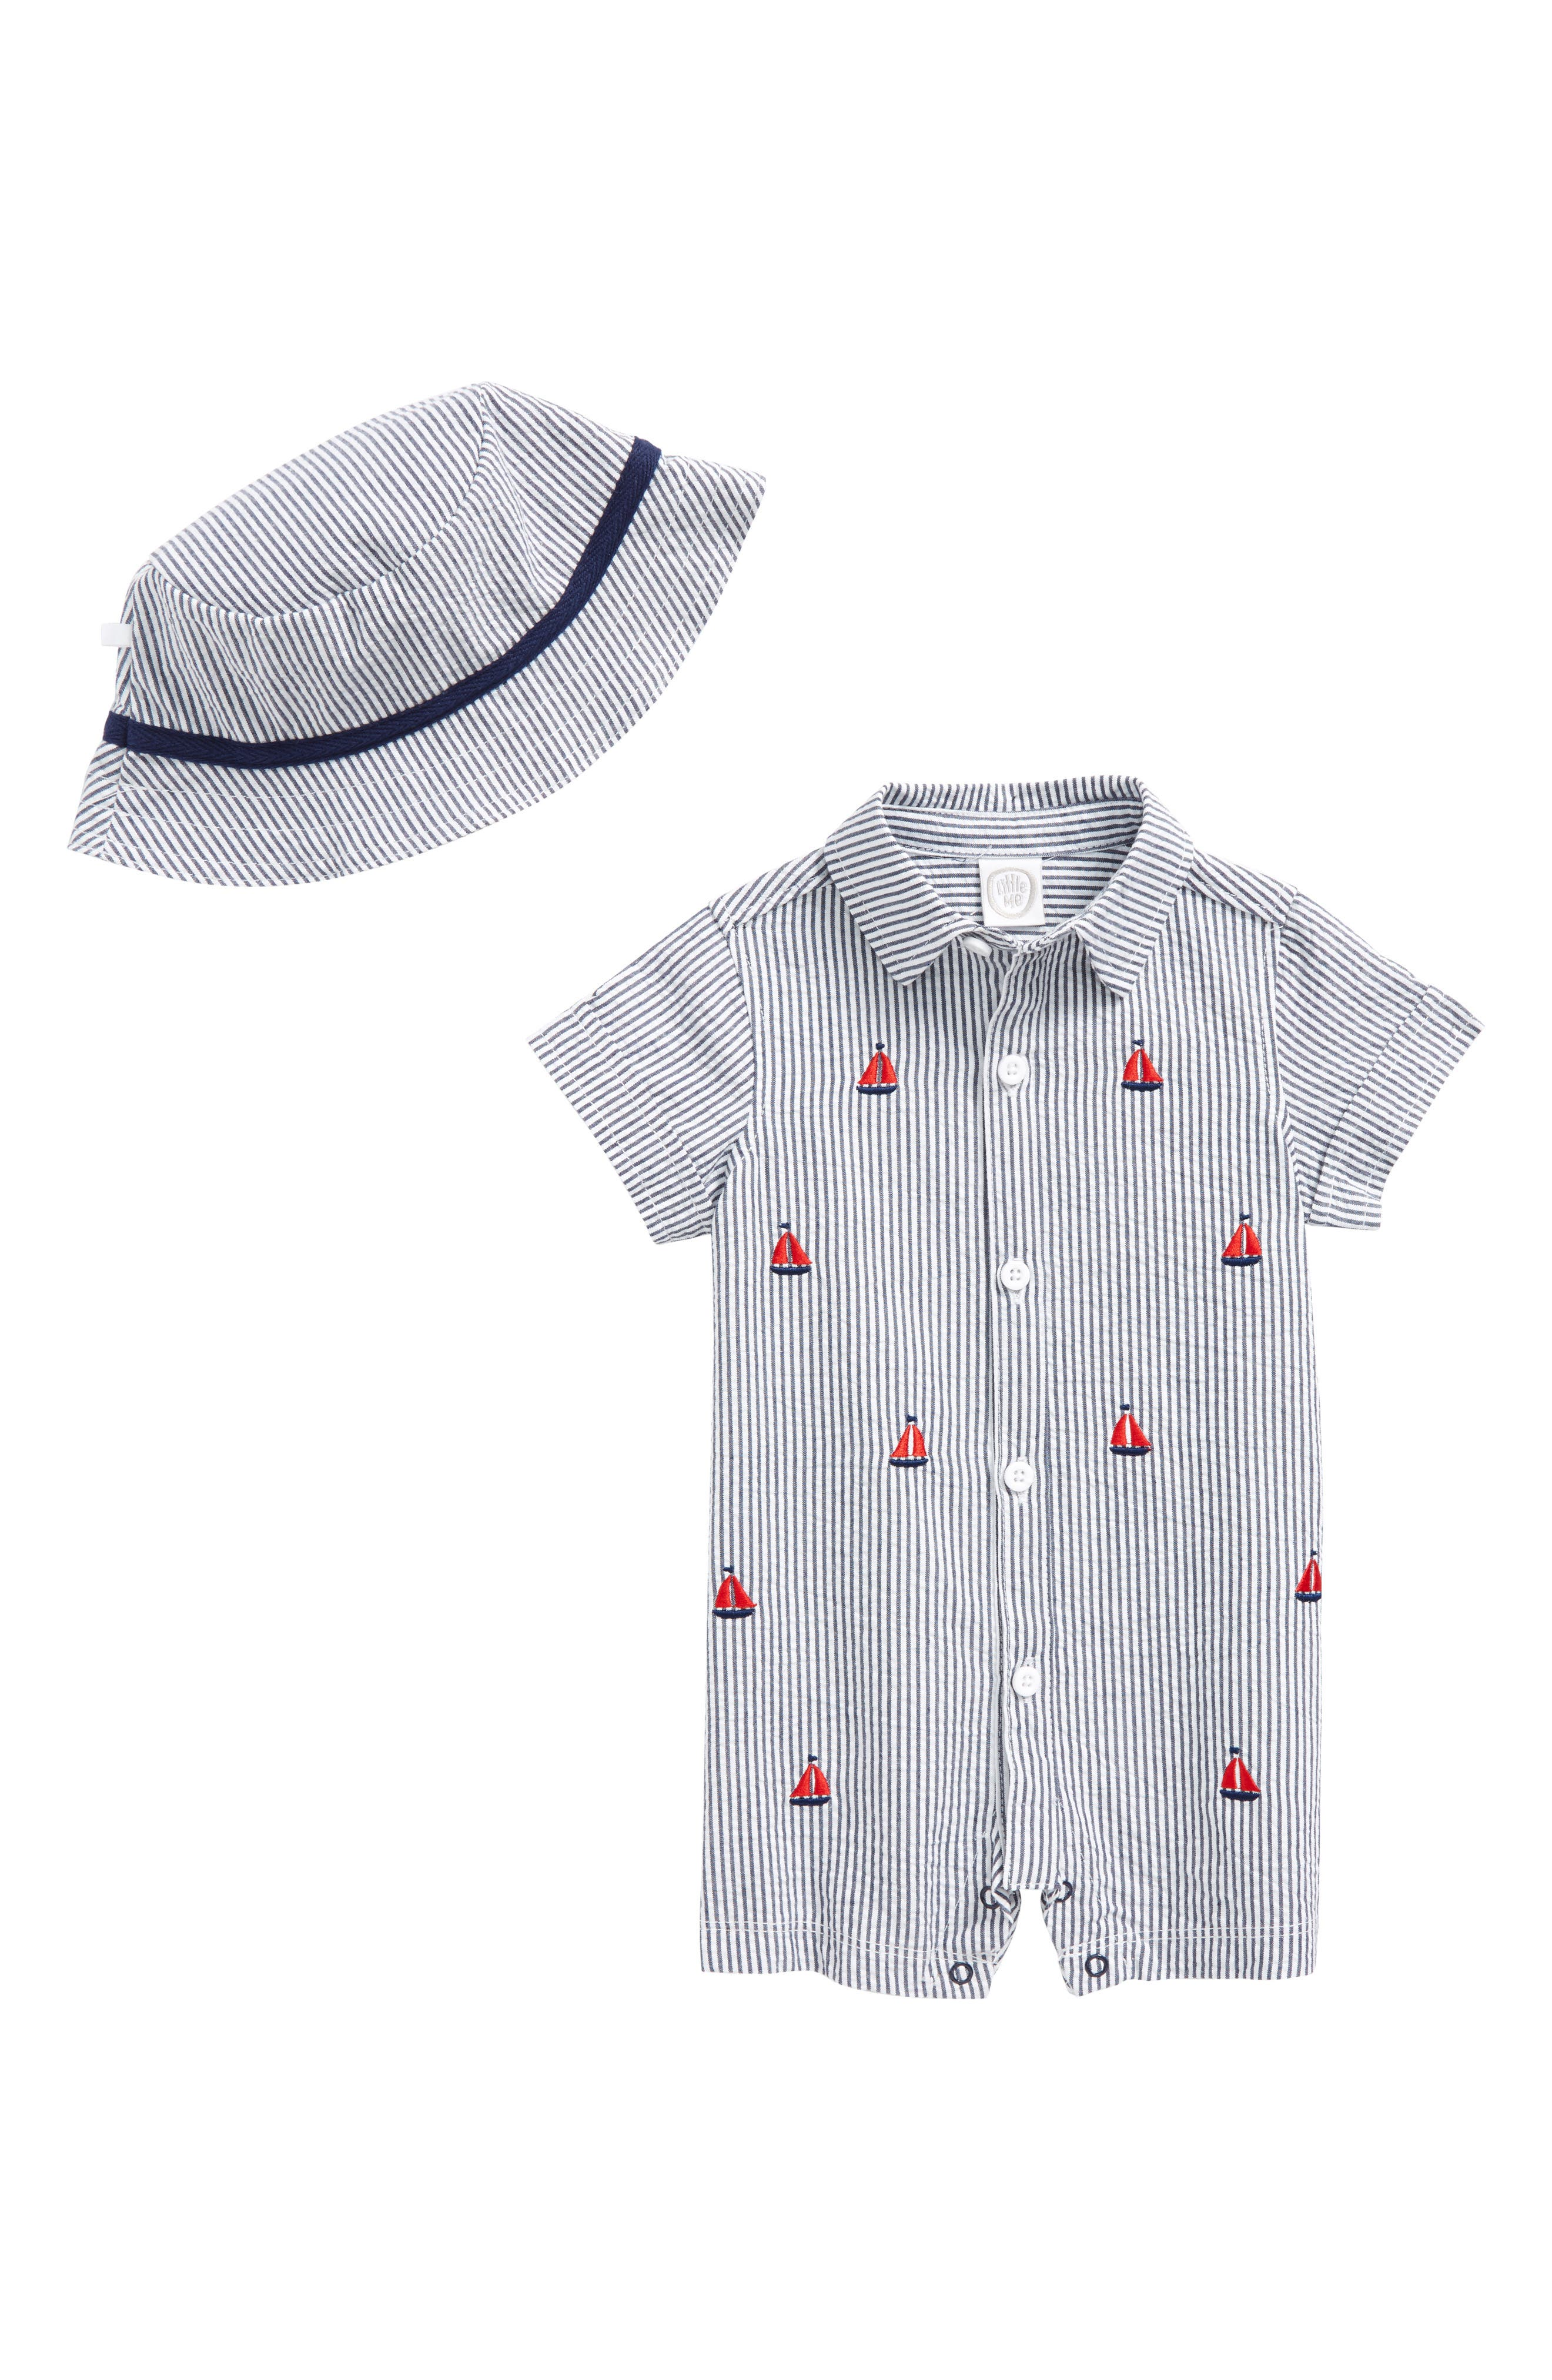 Boating Romper & Hat Set,                             Main thumbnail 1, color,                             415